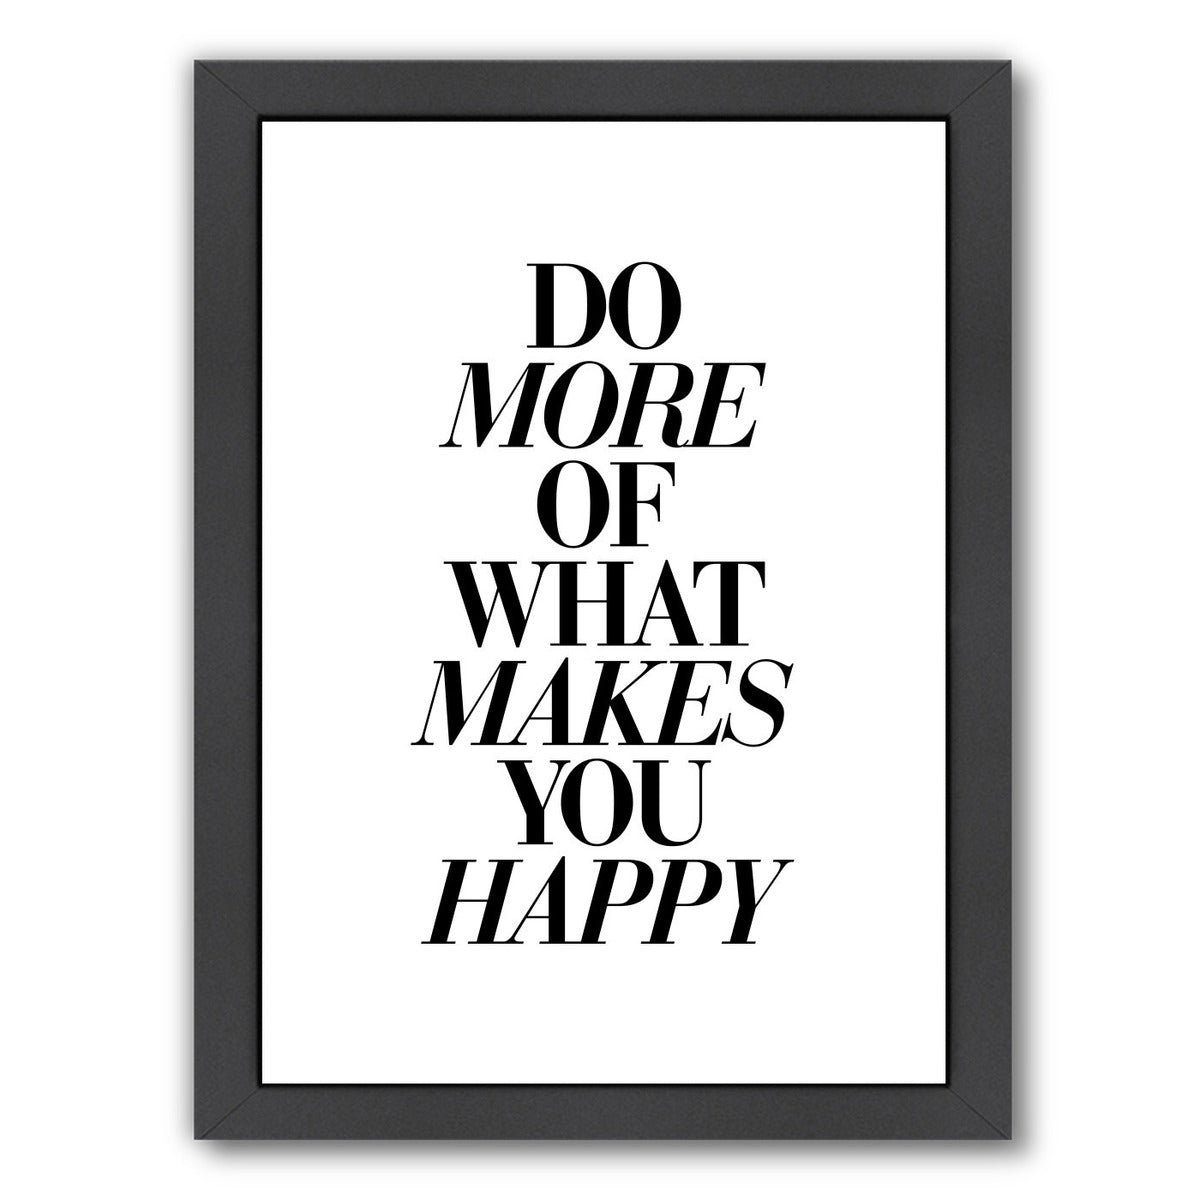 Do More Of What Makes You Happy 2 by Motivated Type Framed Print - Wall Art - Americanflat